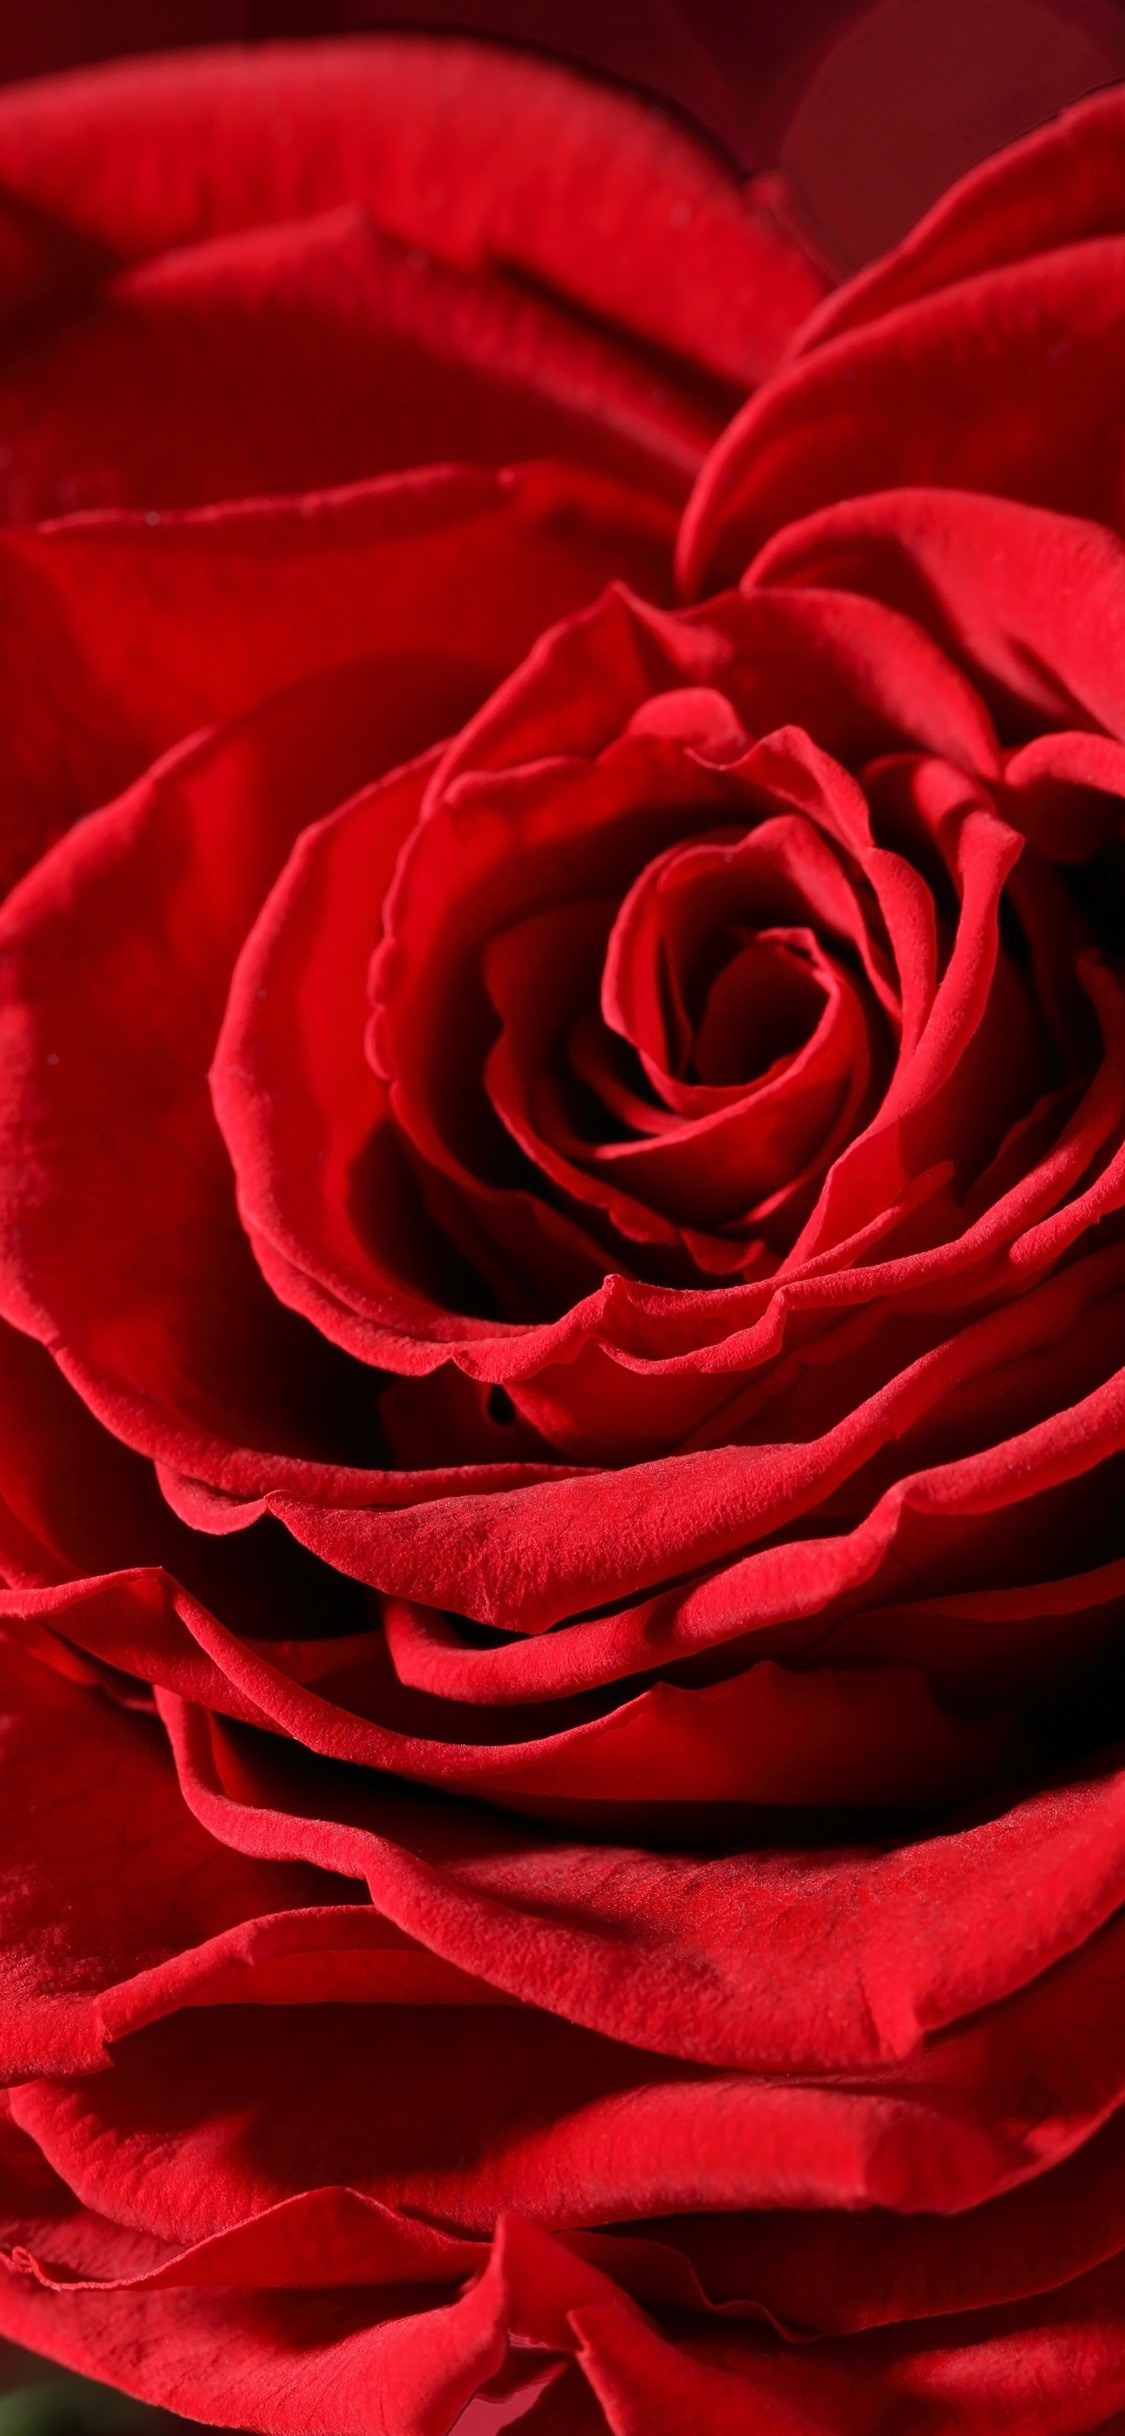 Red Roses Petals Macro Photography 1242x2688 Iphone Xs Max